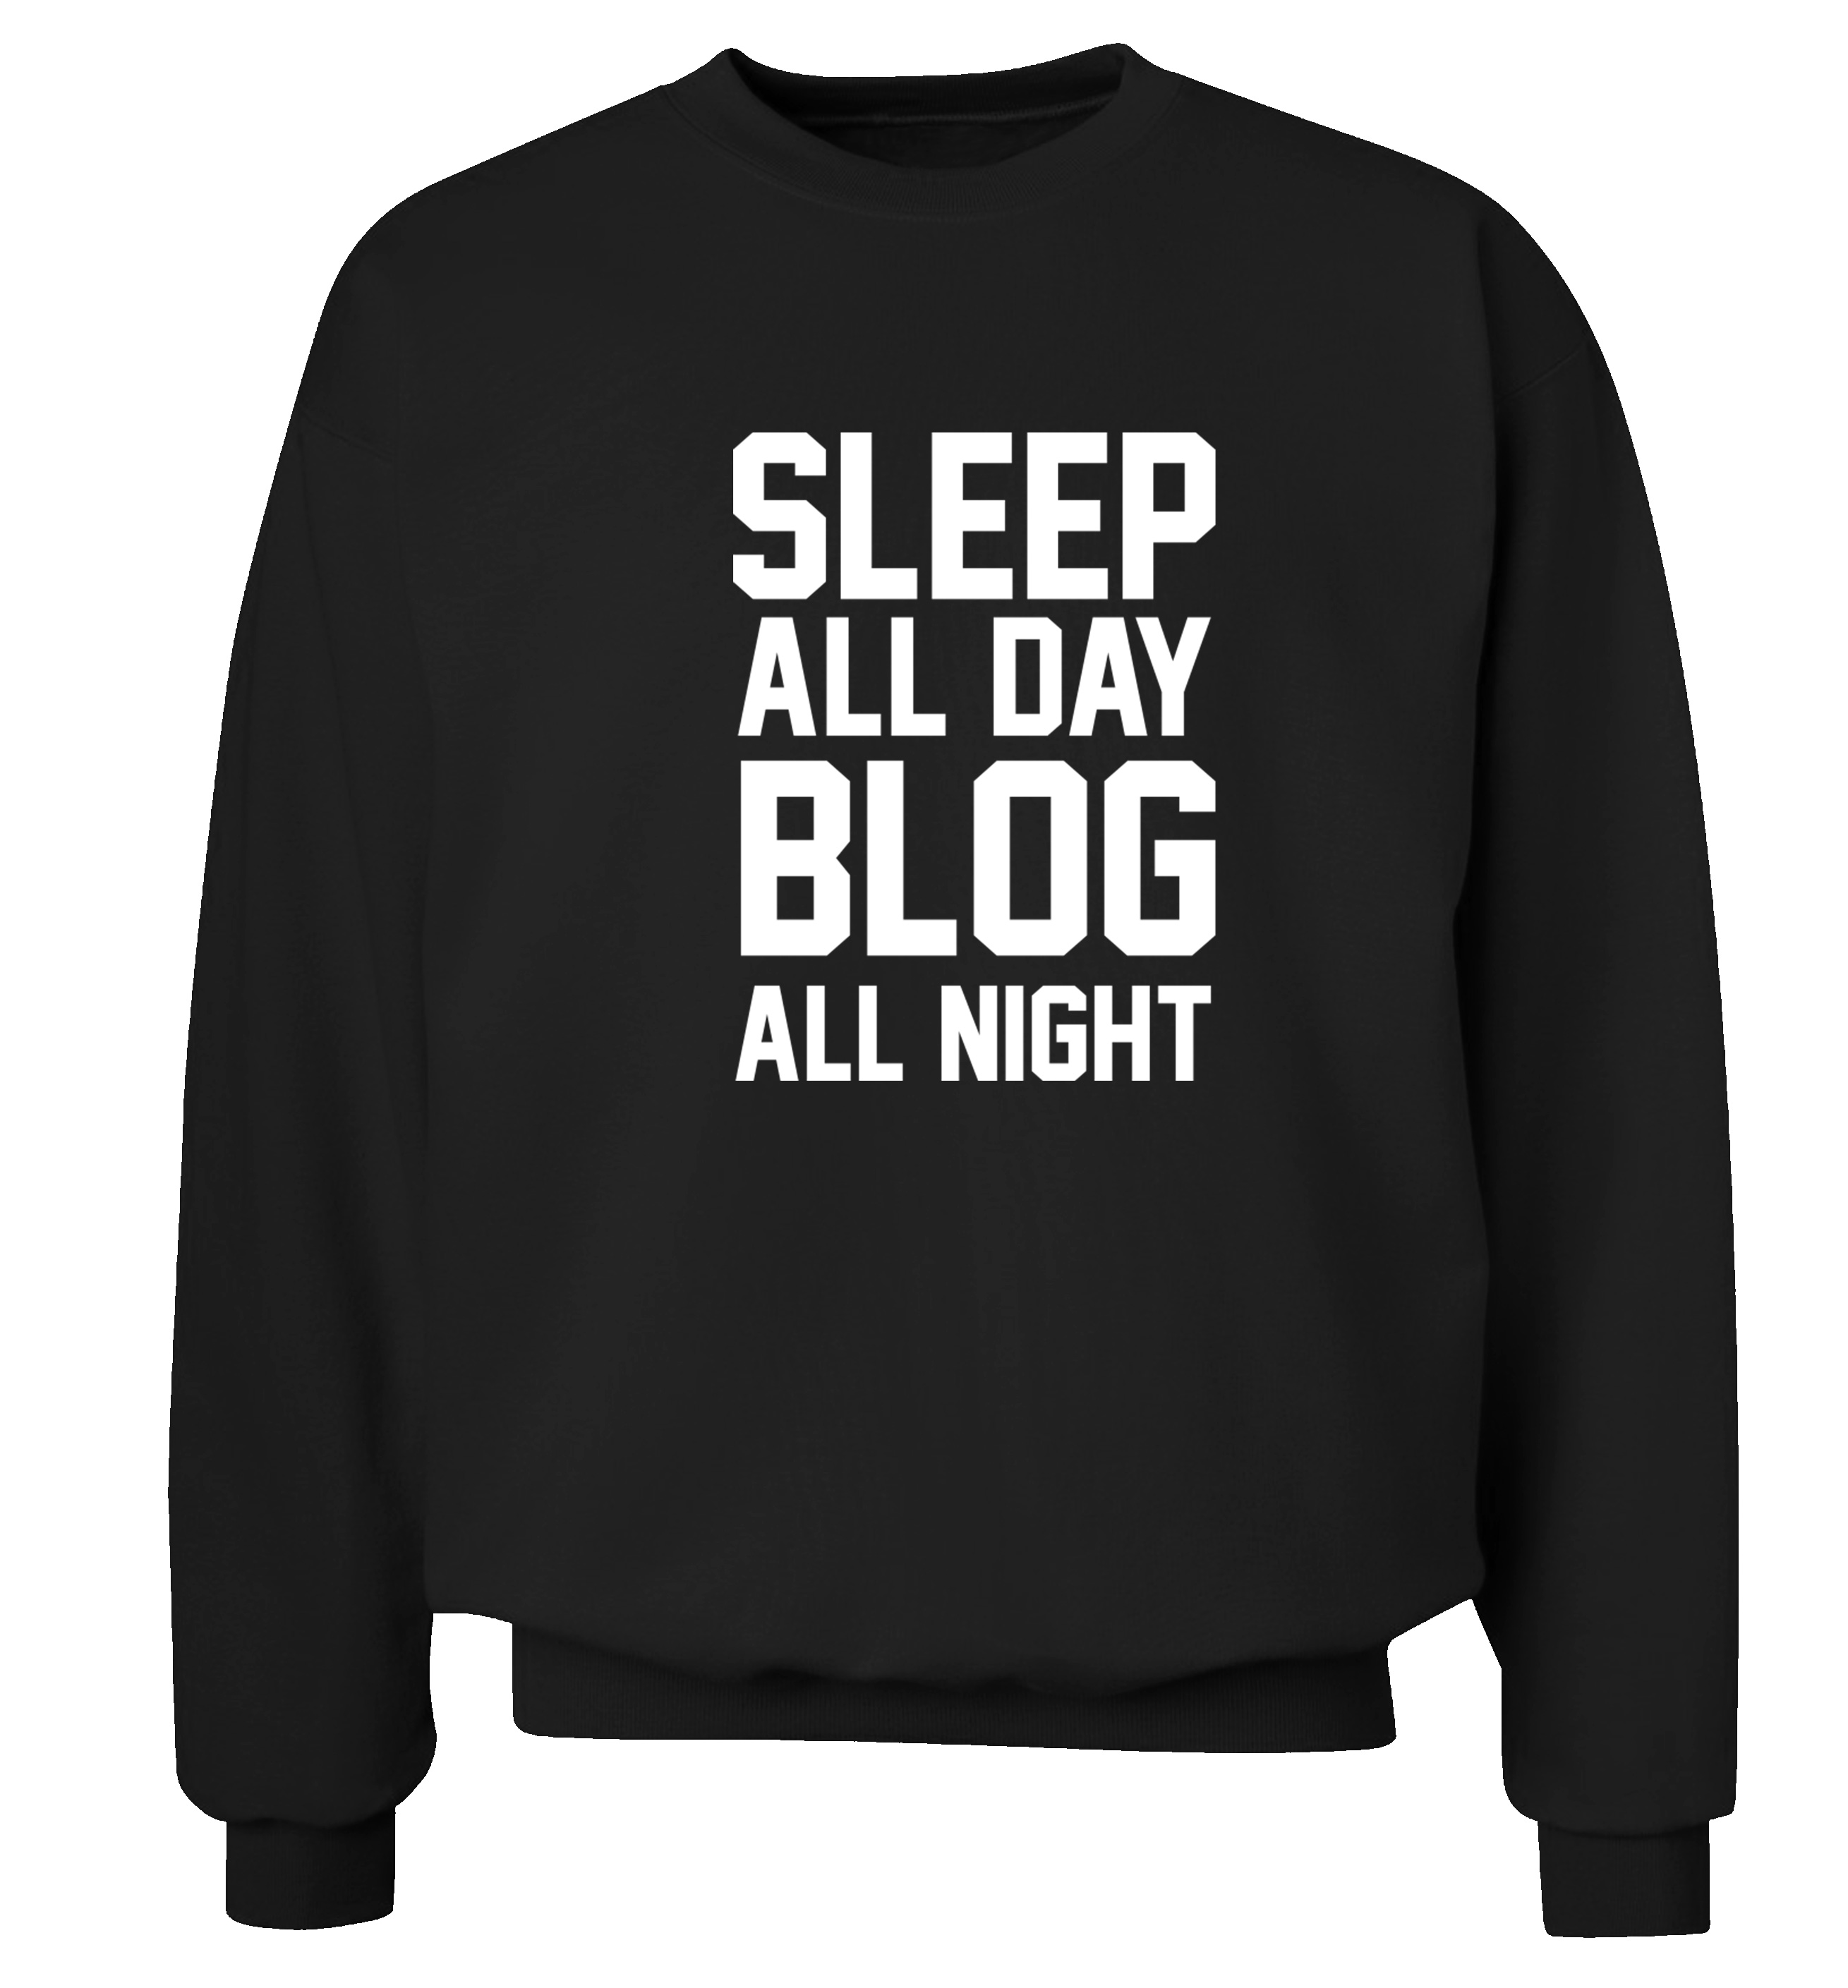 87dc4787bc Sleep all day blog all night sweater hipster instagram joke geek blogger  wifi internet youtube tumblr pullover jumper 147 from Flox Creative